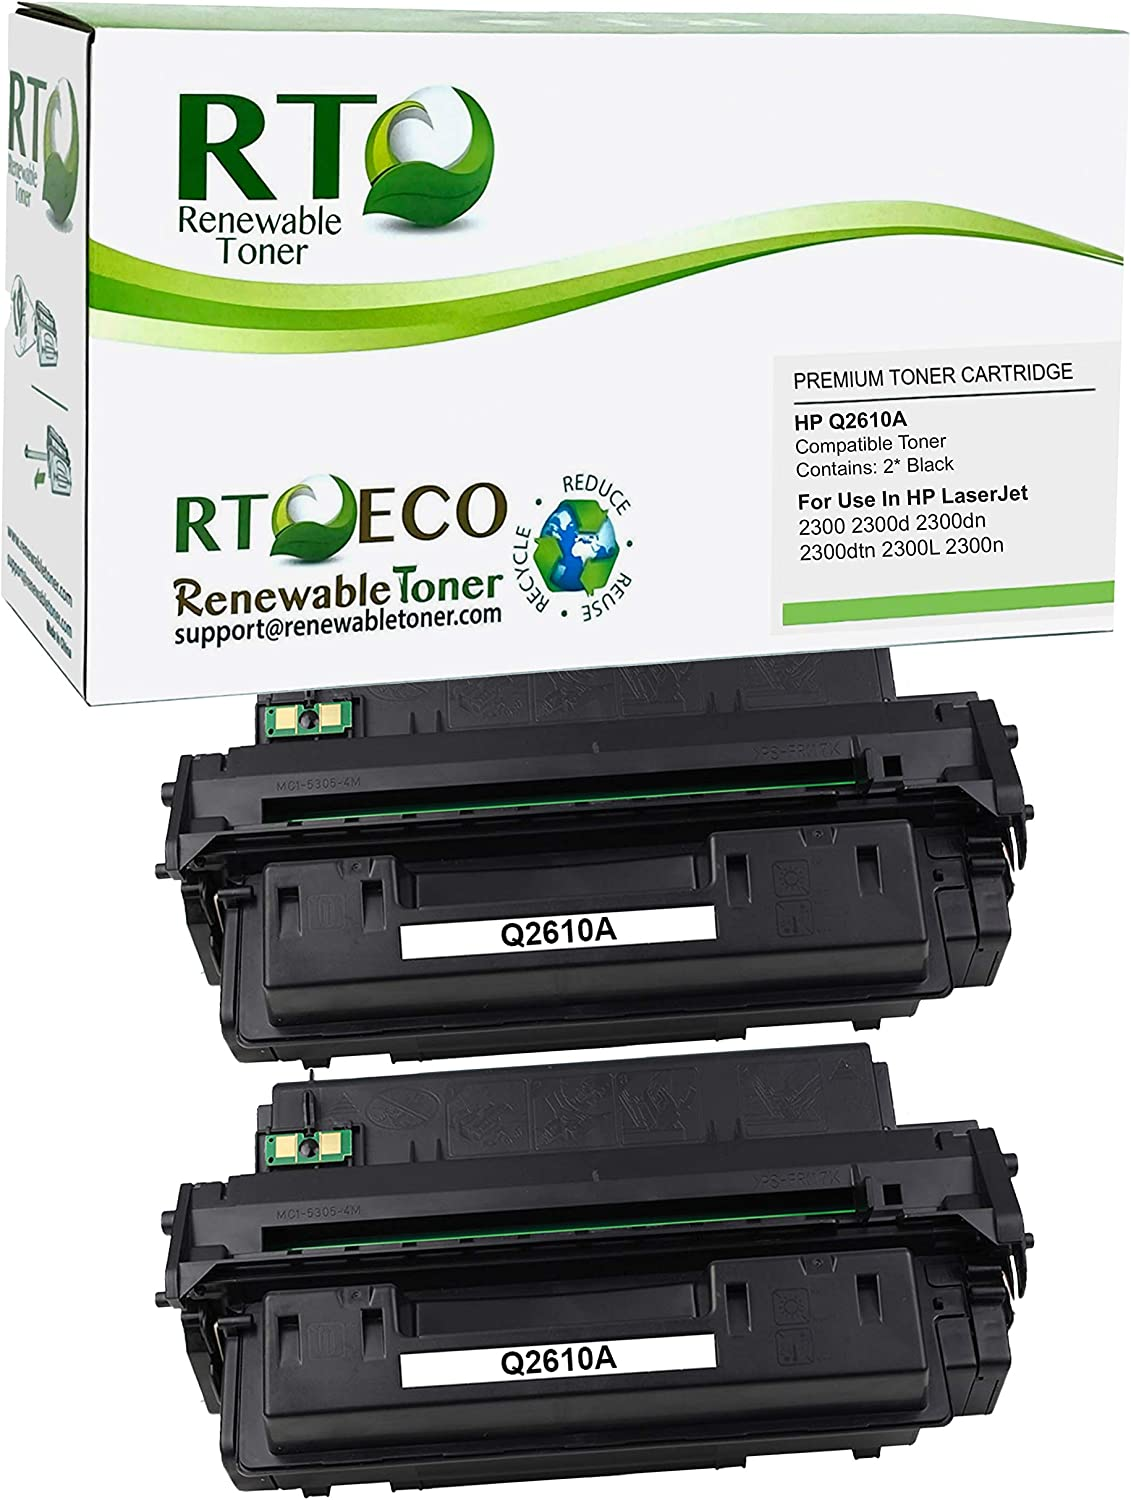 Renewable Toner Compatible Toner Cartridge Replacement for HP 10A Q2610A for Laserjet 2300 2300d 2300dn 2300dtn 2300L 2300n (Black, 2-Pack)